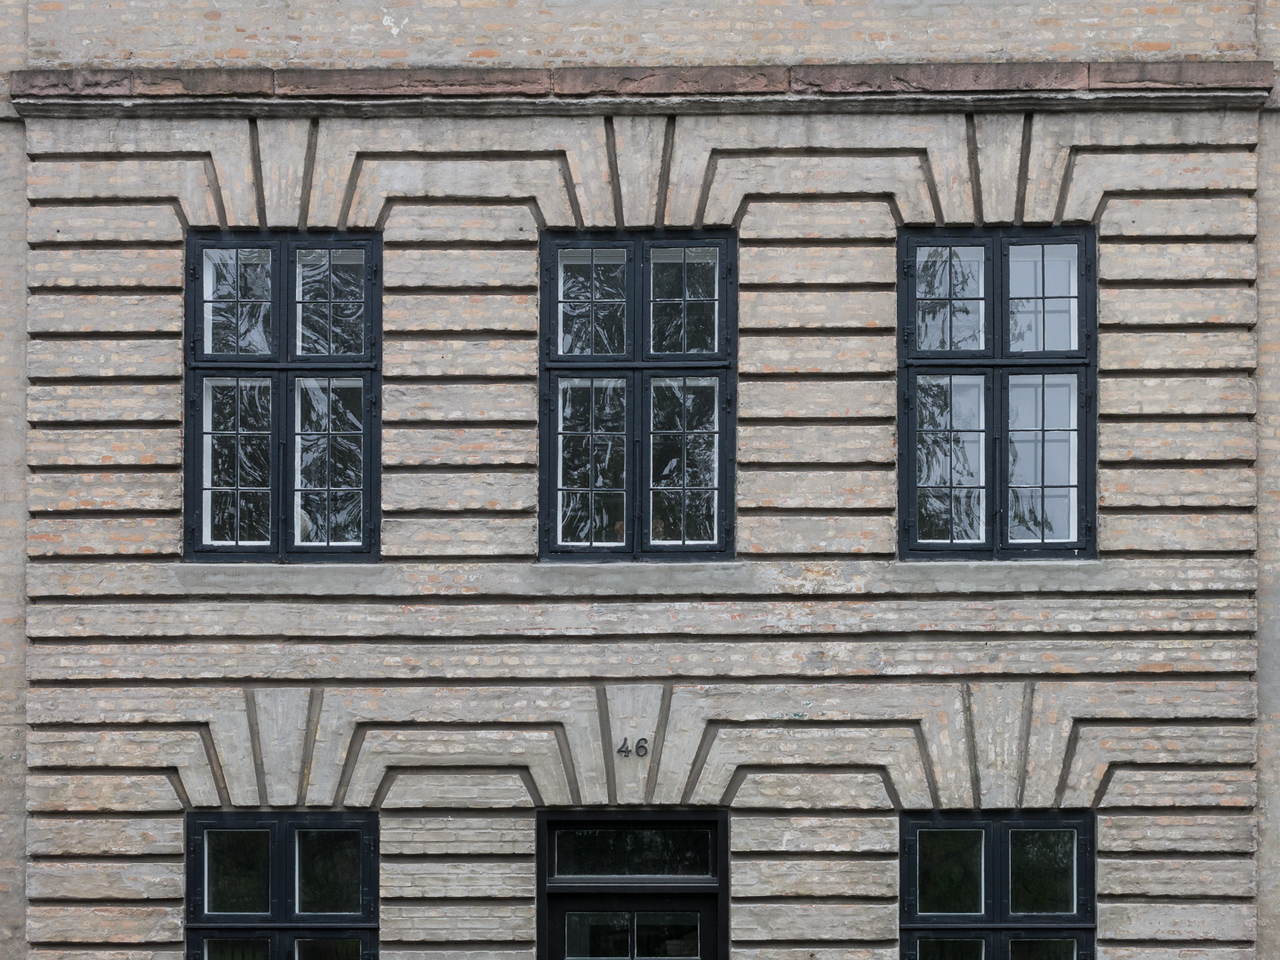 looks just like a facade